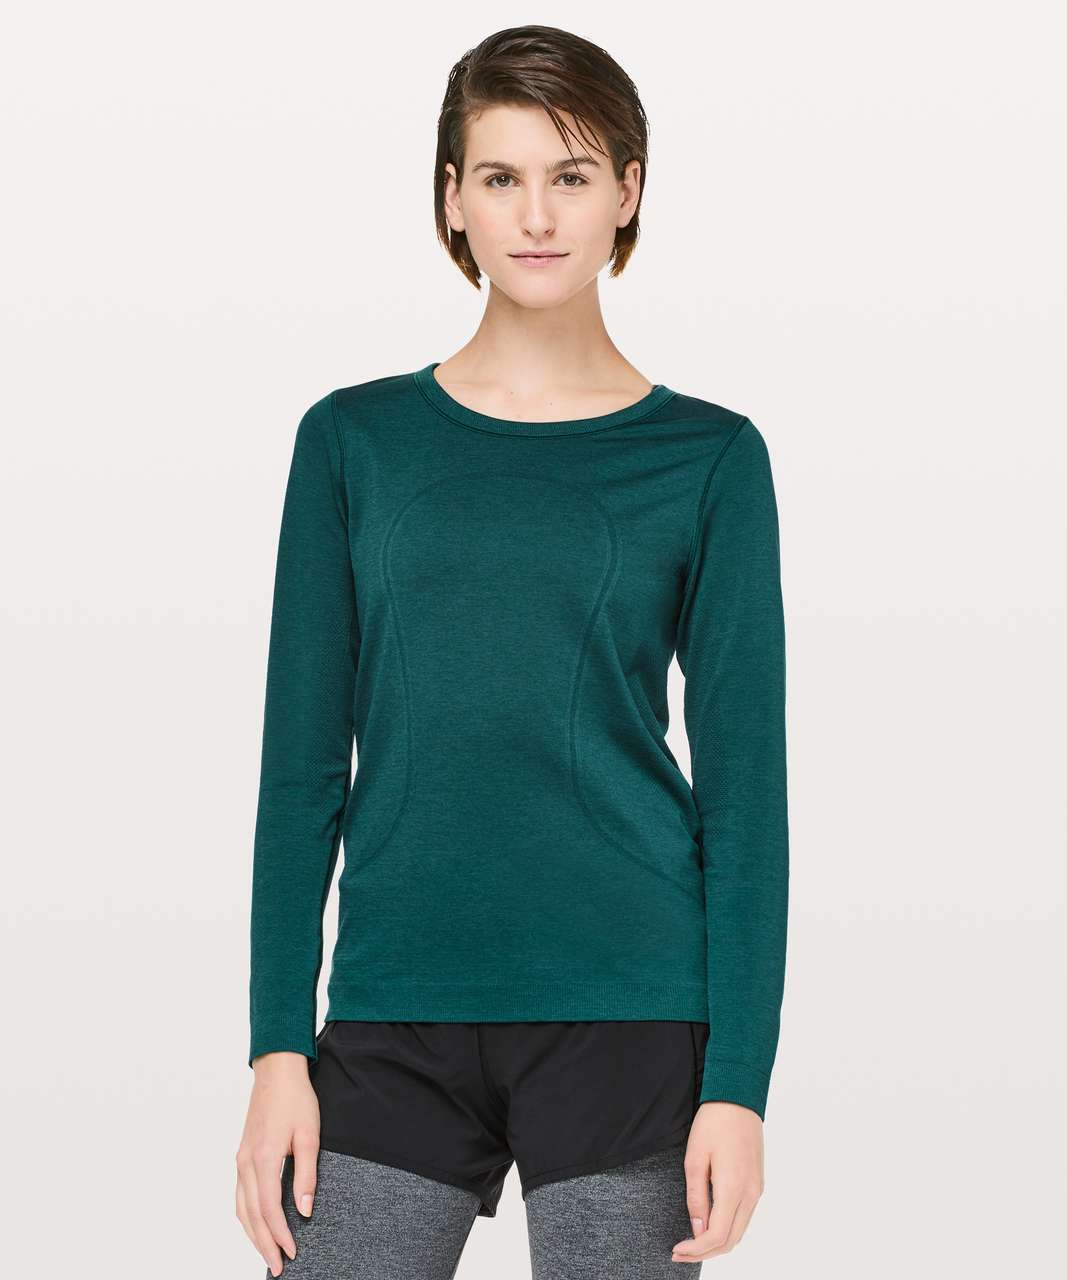 Lululemon Swiftly Tech Long Sleeve (Breeze) *Relaxed Fit - Royal Emerald / Royal Emerald